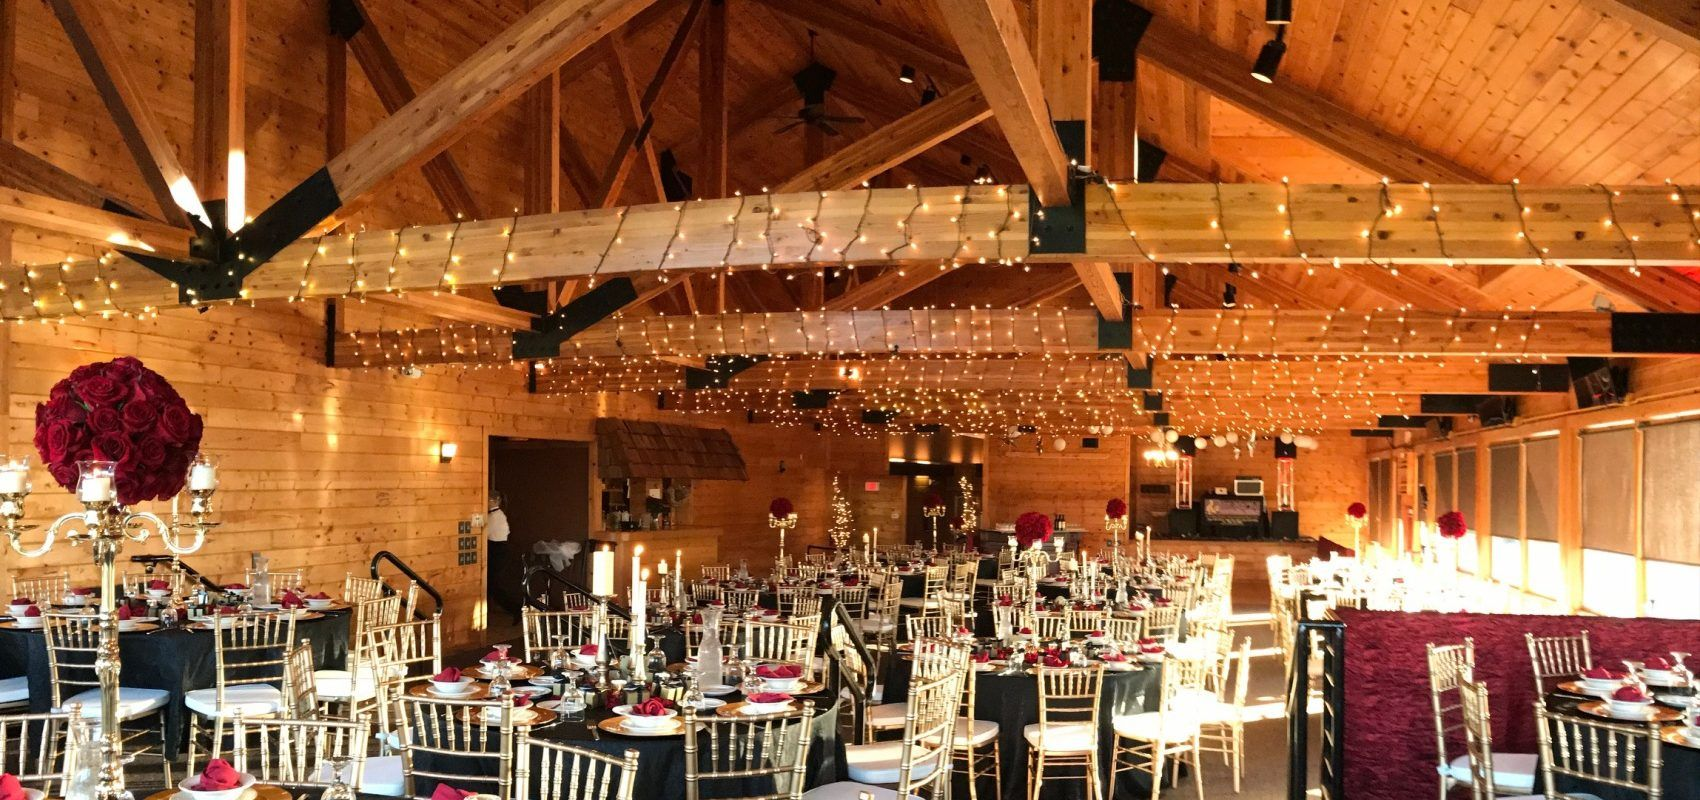 Myth Wedding Venues Banquets And: Myth Barn Wedding Hall And Wedding Venue By Rochester And